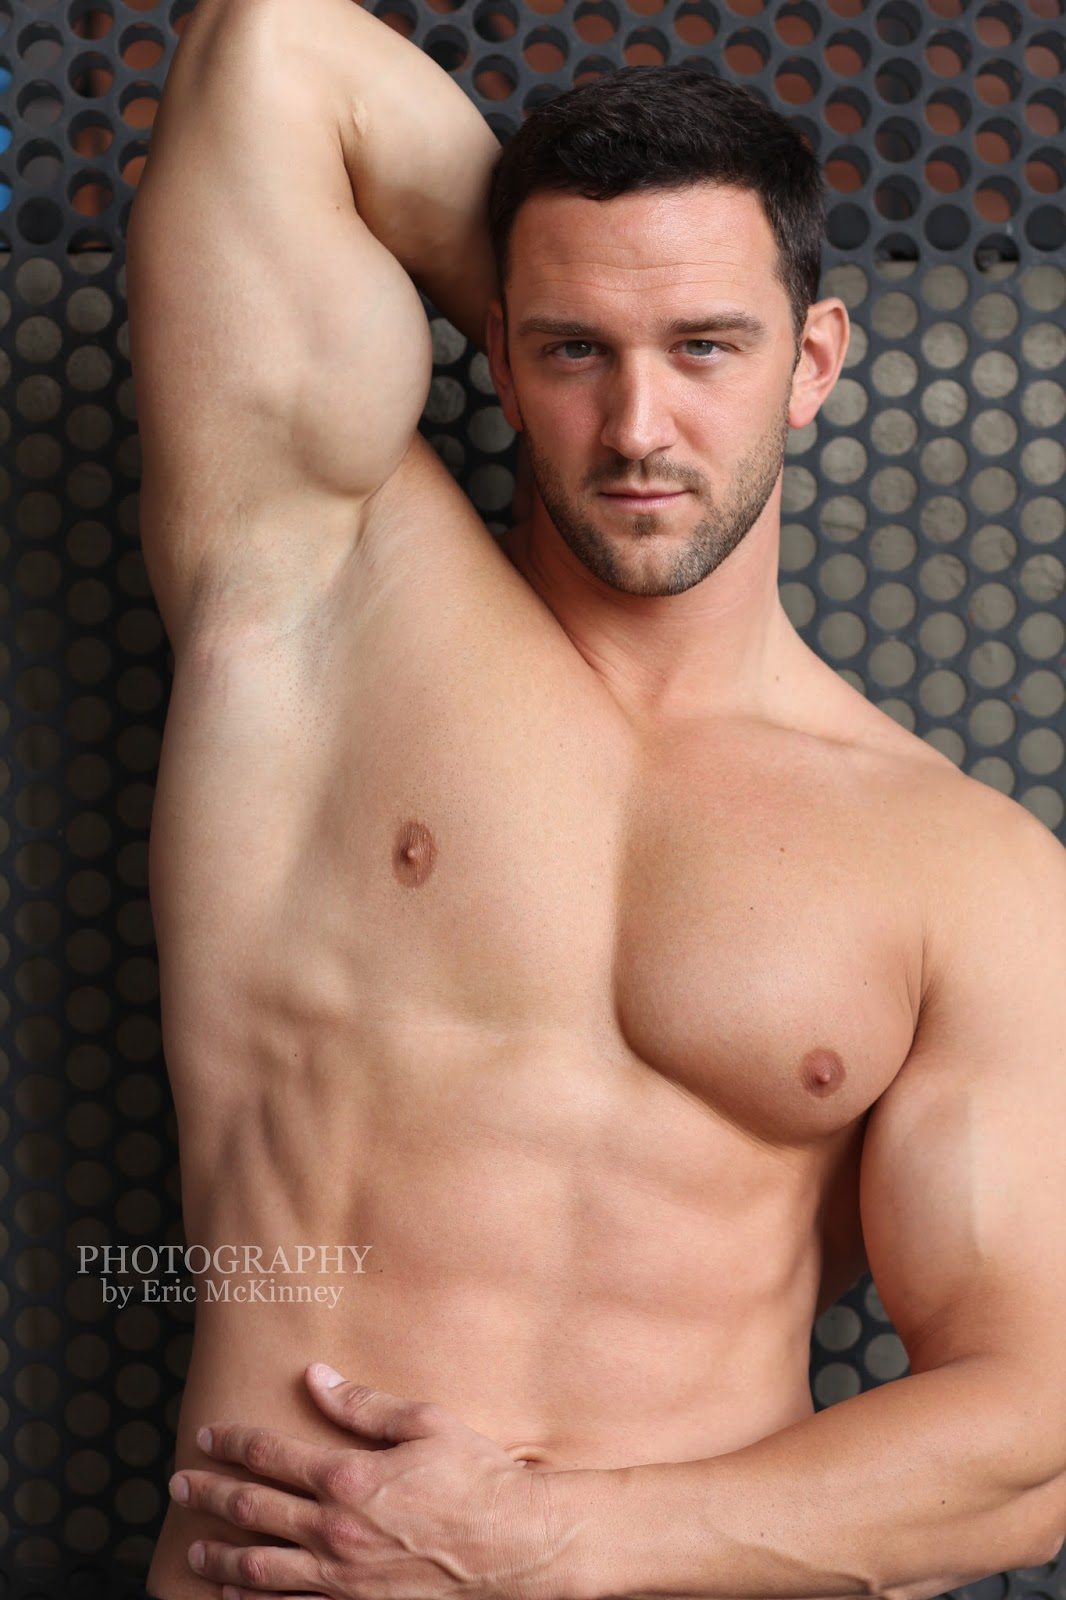 David Soltis by Eric McKinney